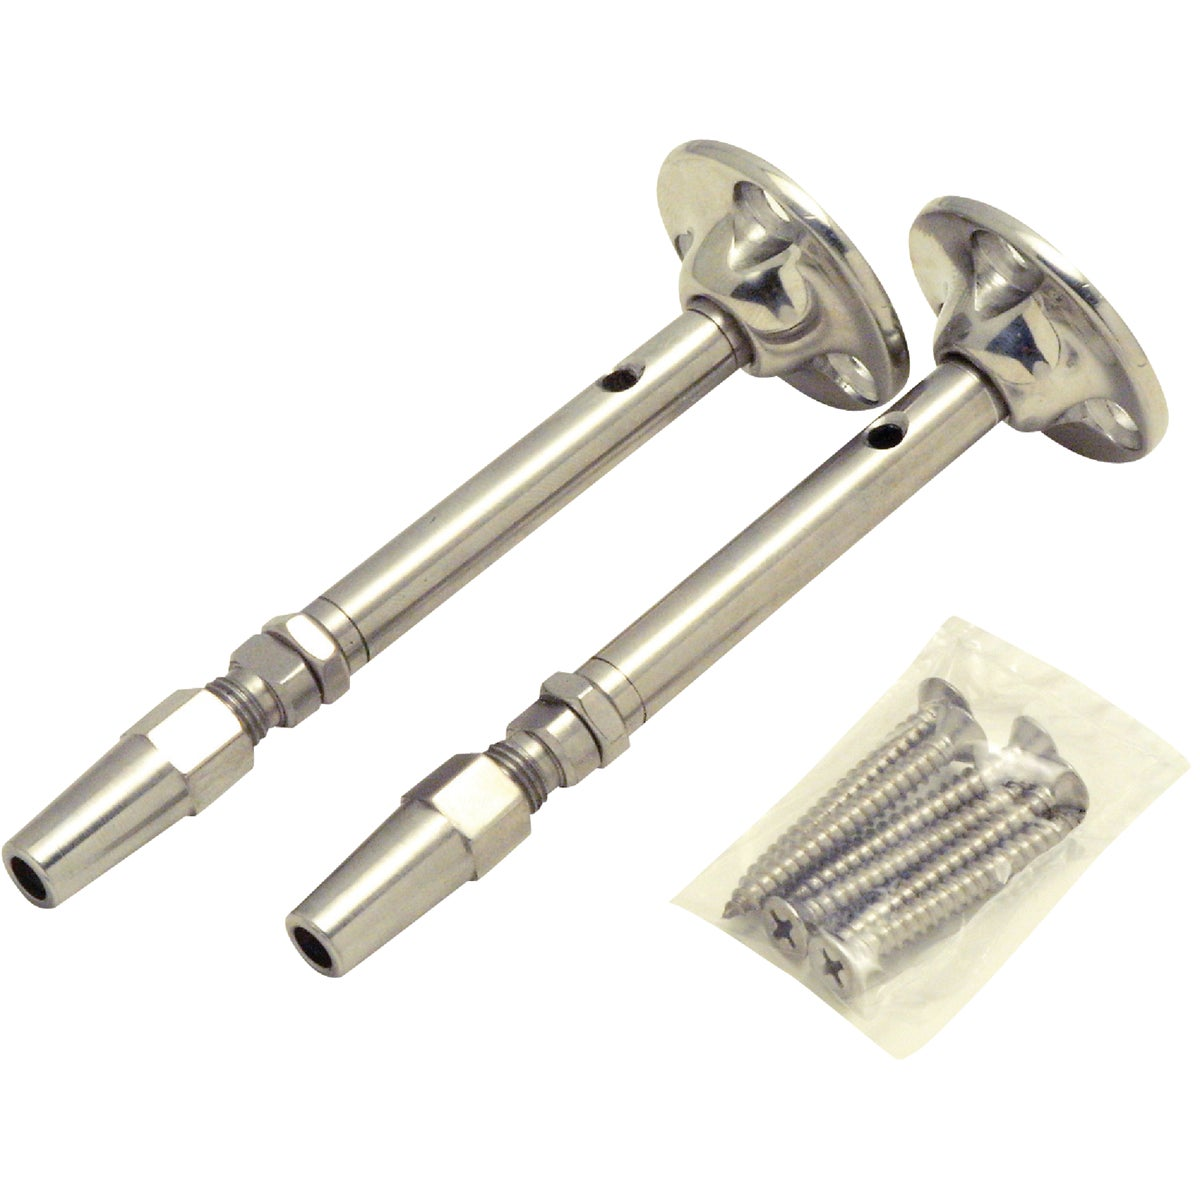 2PK RAILEASY TENSIONER